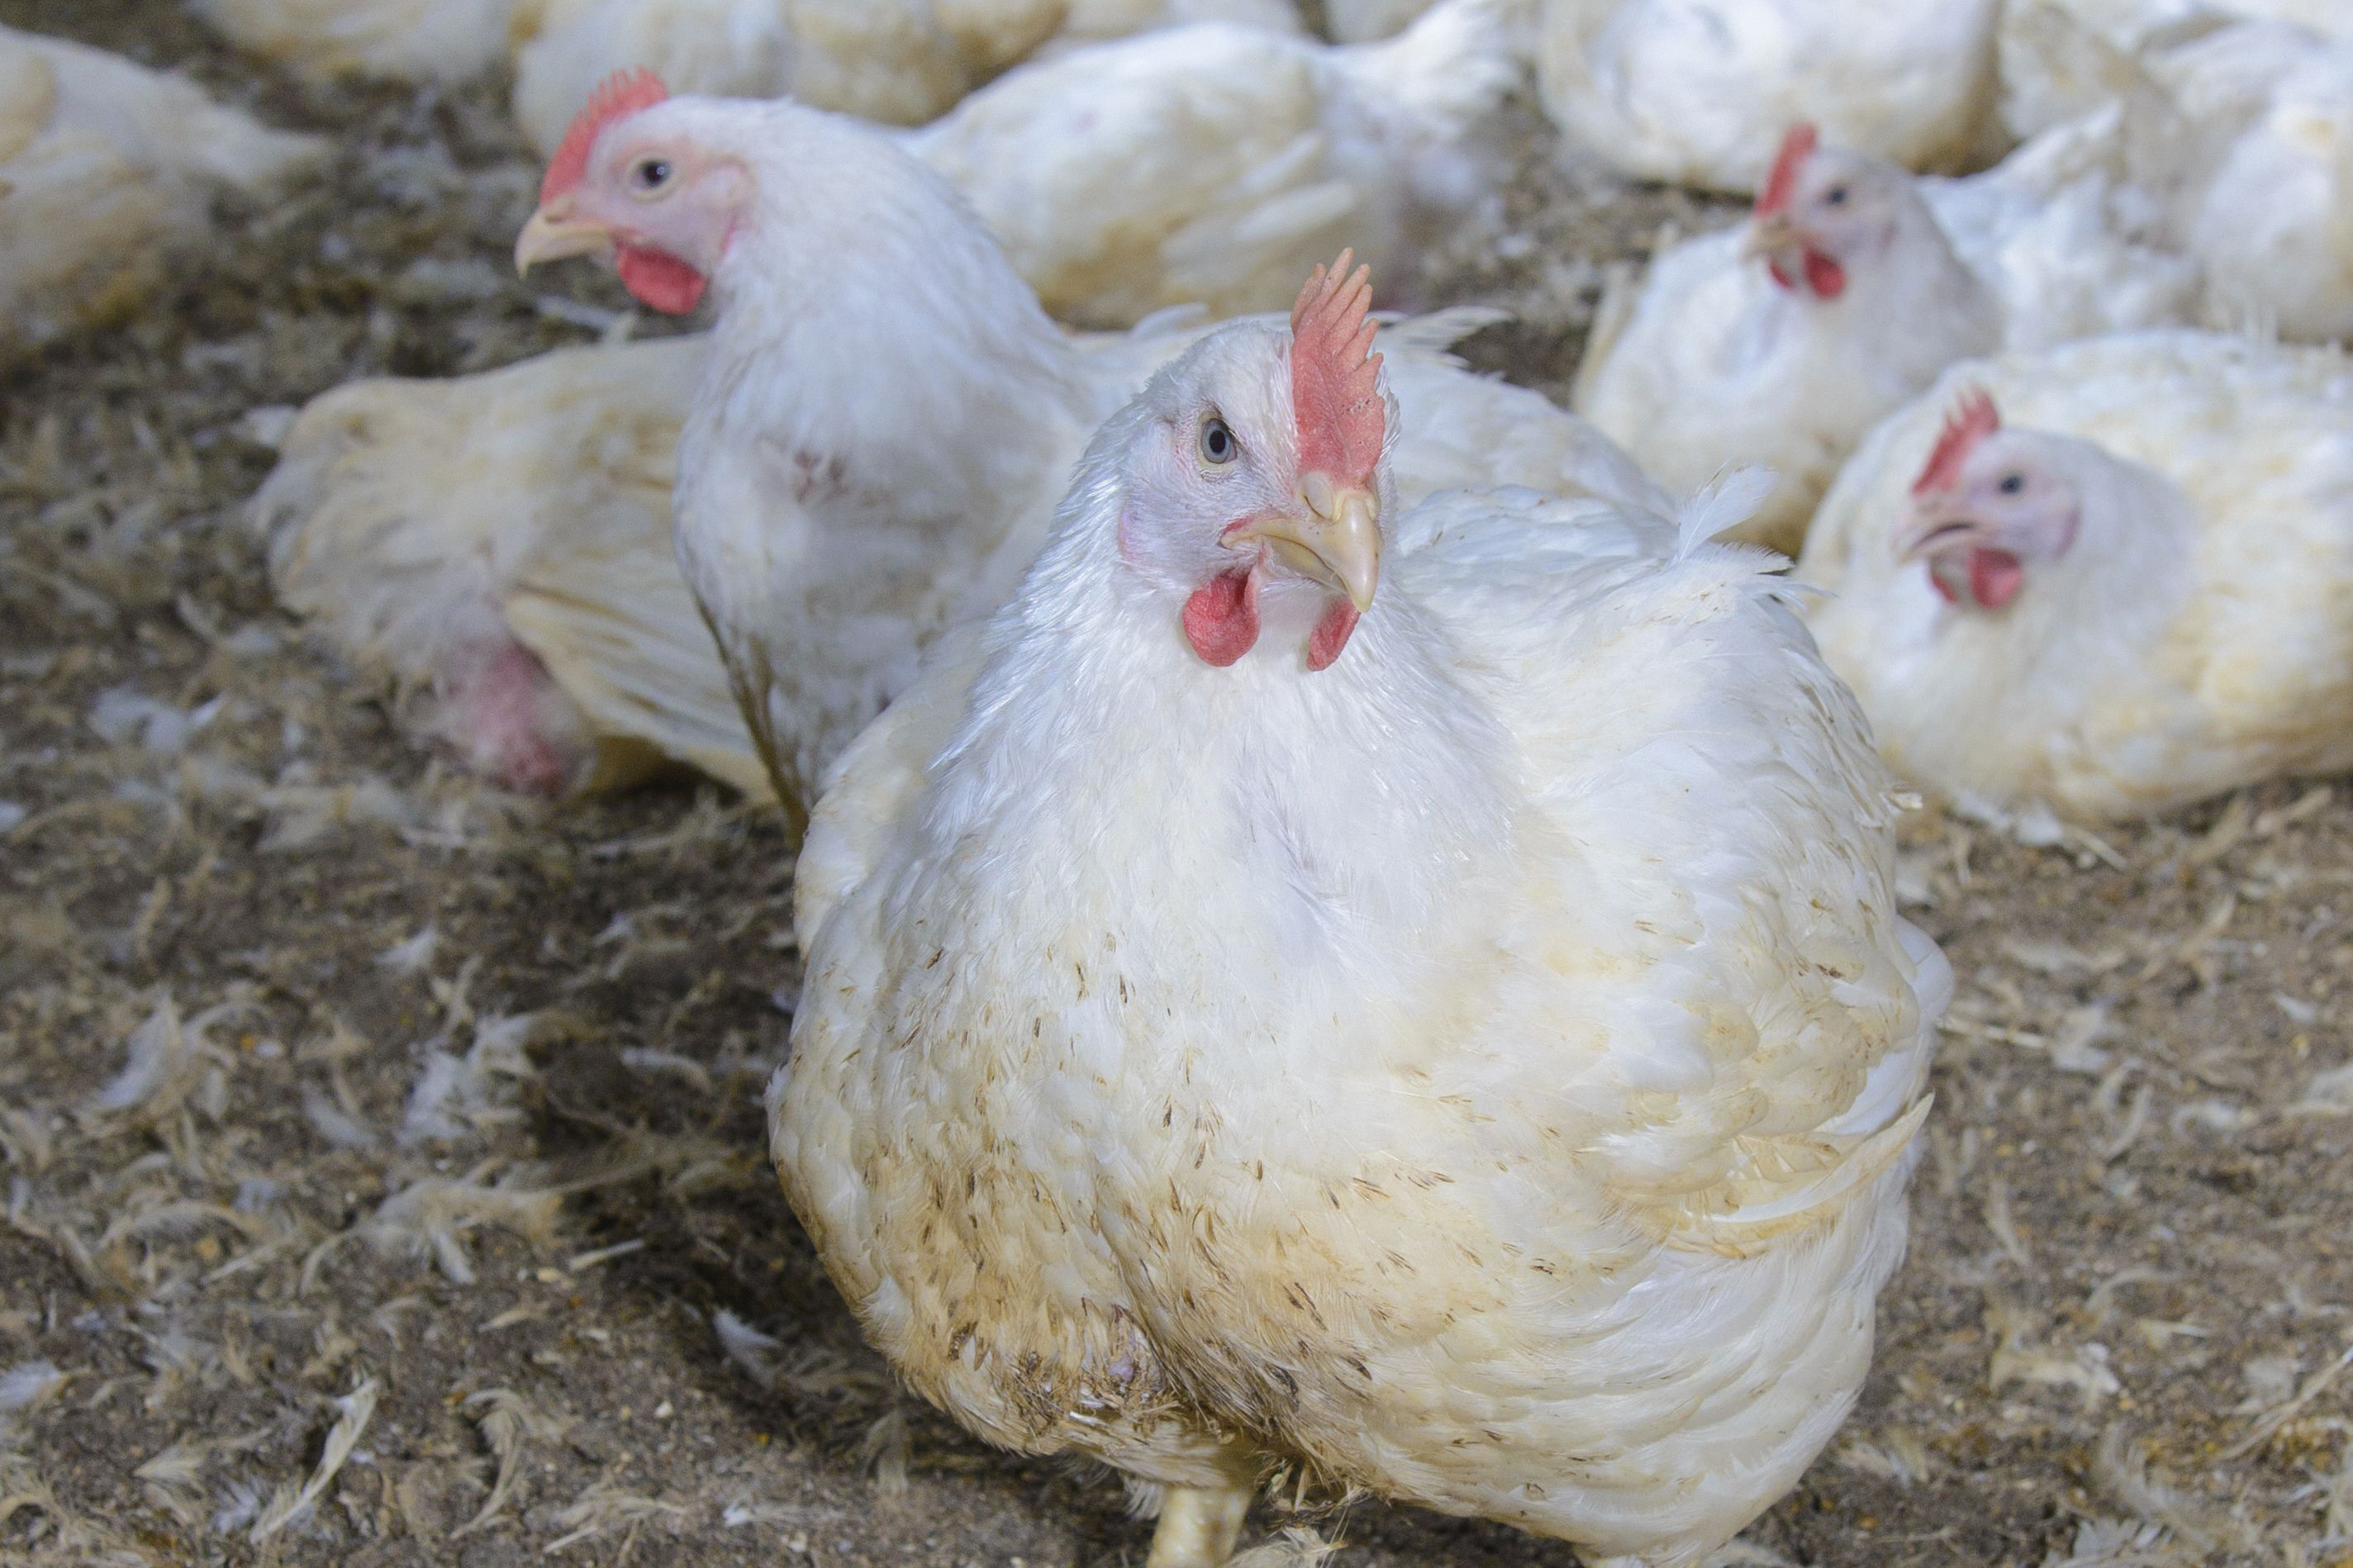 Between 2012-2016, the UK poultry meat sector reduced its use of antibiotics by weight by 71% while meat production during this period rose by 11%. Photo: John Eveson/Rex/Shutterstock